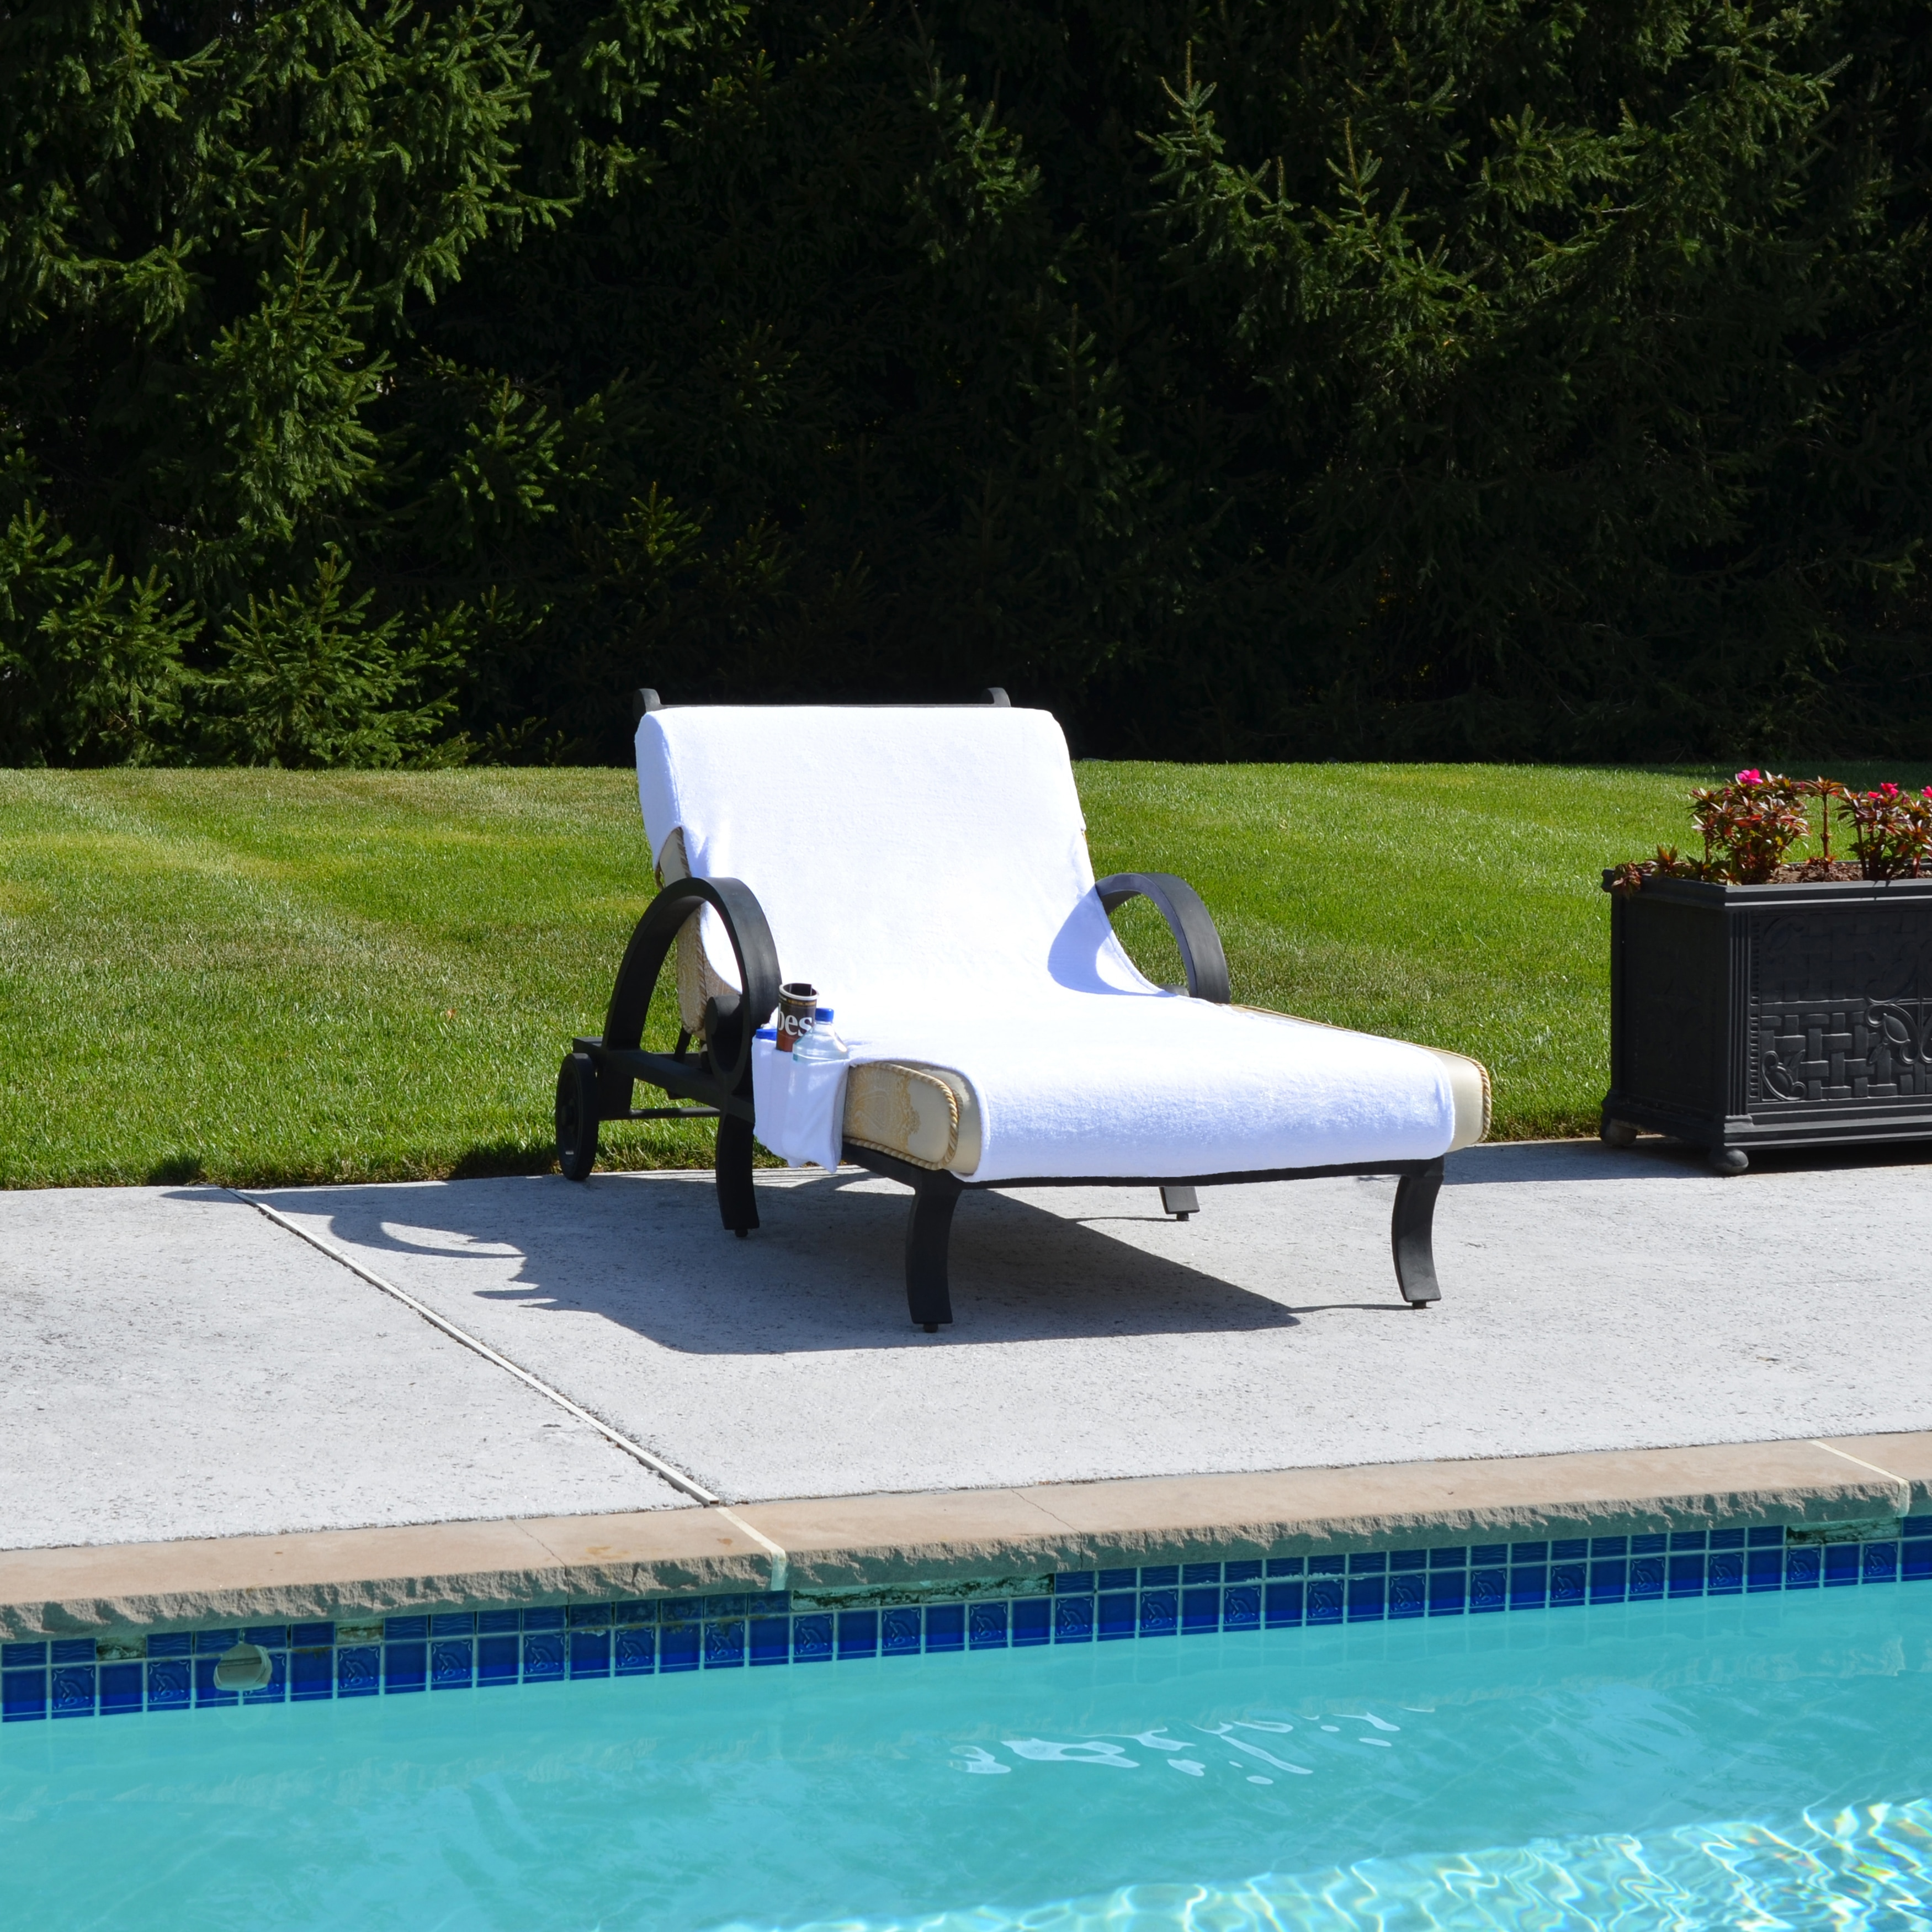 Turkish Cotton Standard Chaise Lounge Chair Towel Cover With Pockets   Free  Shipping On Orders Over $45   Overstock   14294640